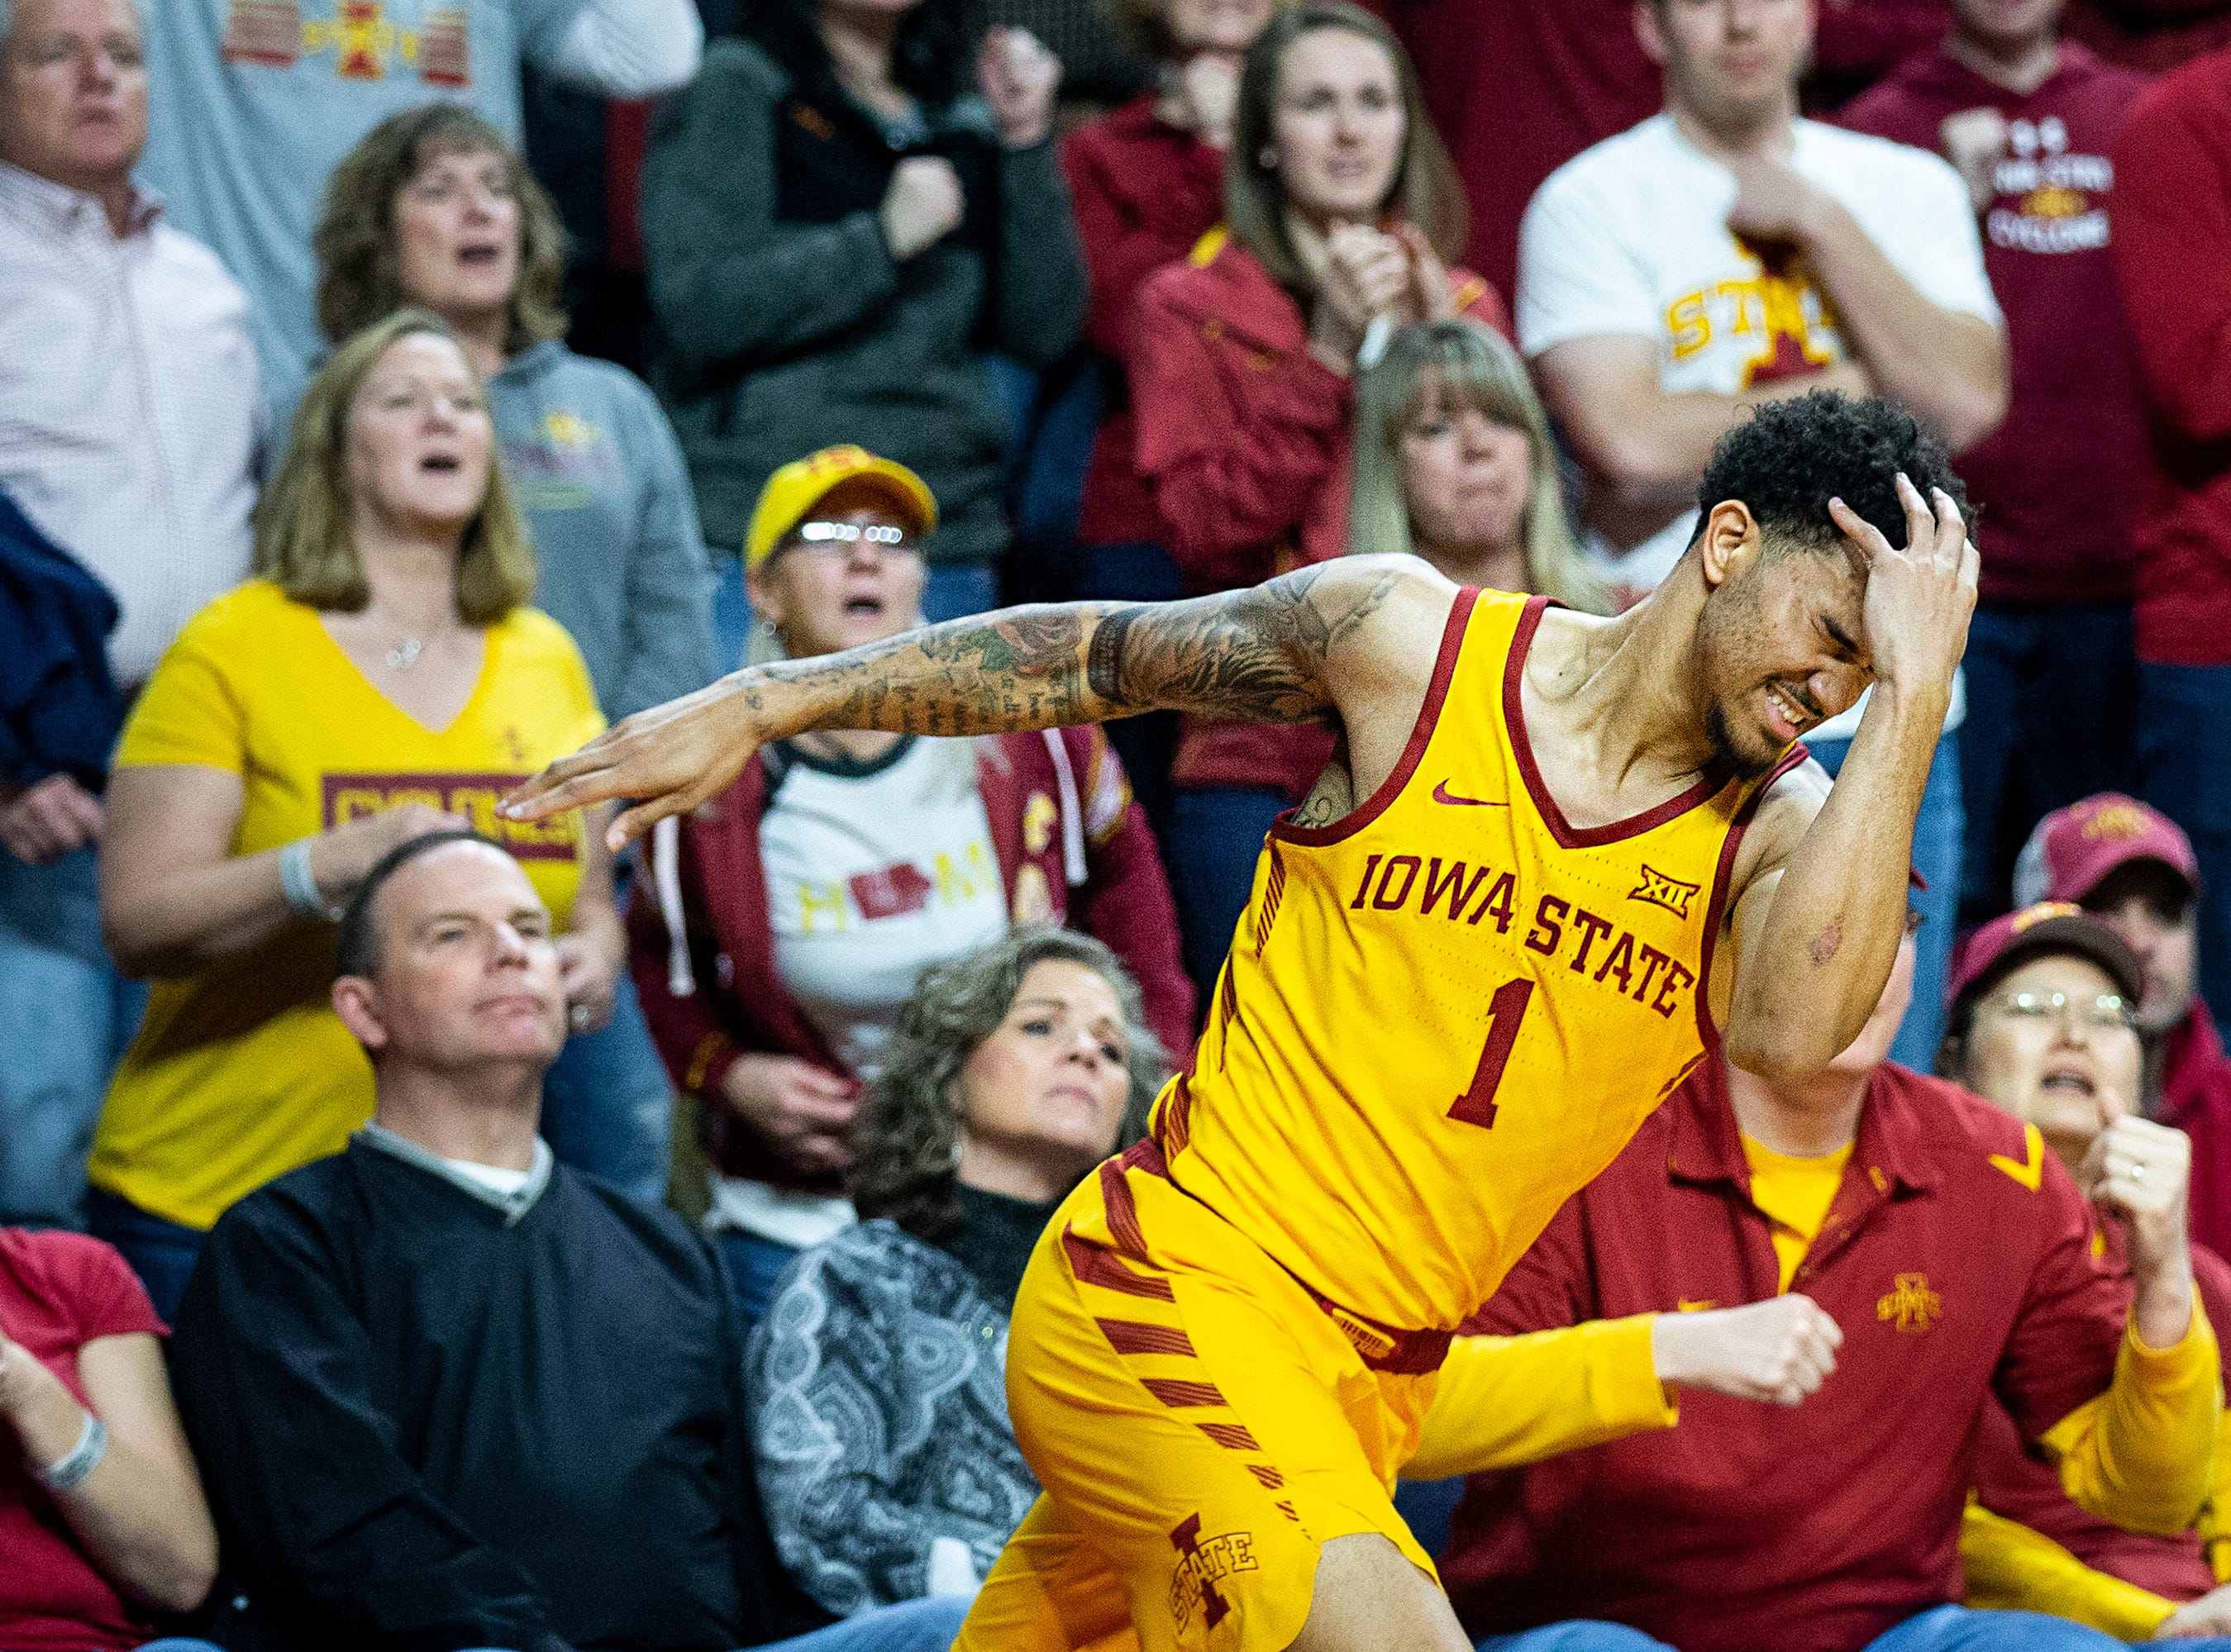 Iowa State's Nick Weiler-Babb reacts to missing a thee-point shot in the final minutes during the Iowa State men's basketball game against Kansas State on Saturday, Jan. 12, 2019, in Hilton Coliseum. The Cyclones lost to KSU by one point, 58-57.